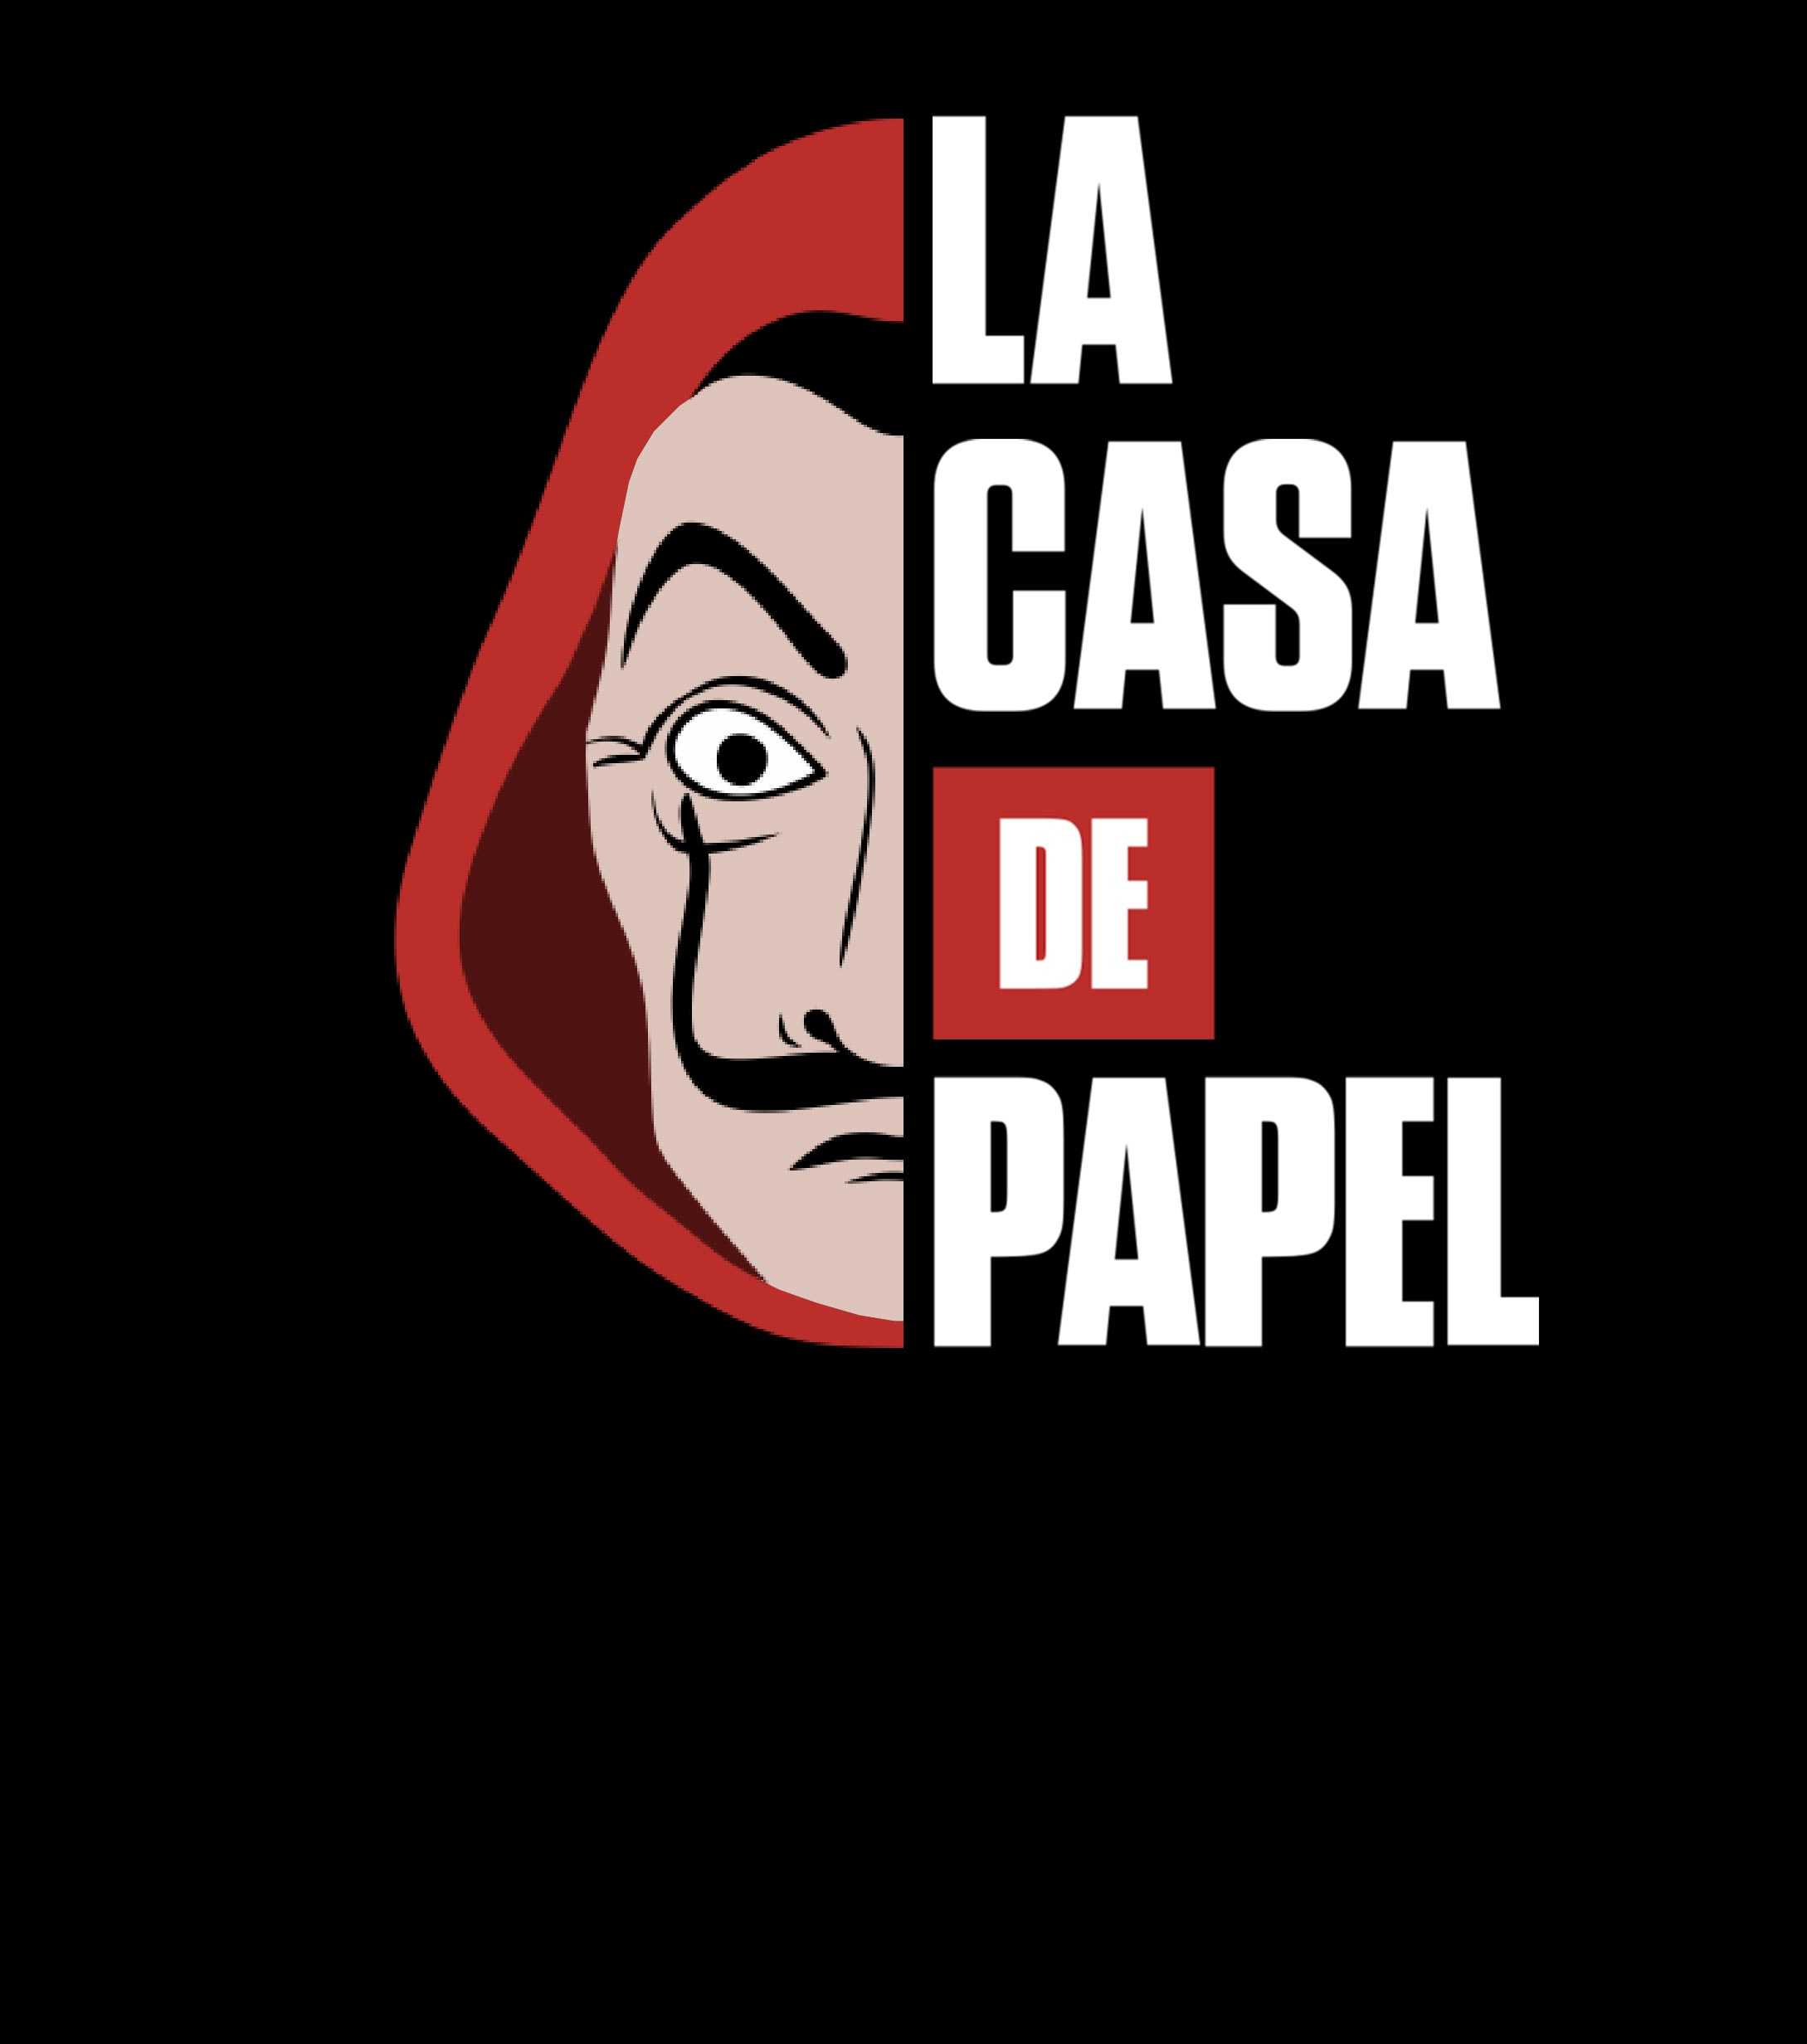 Design La Casa De Papel By Yellowolf04 Pampling Com